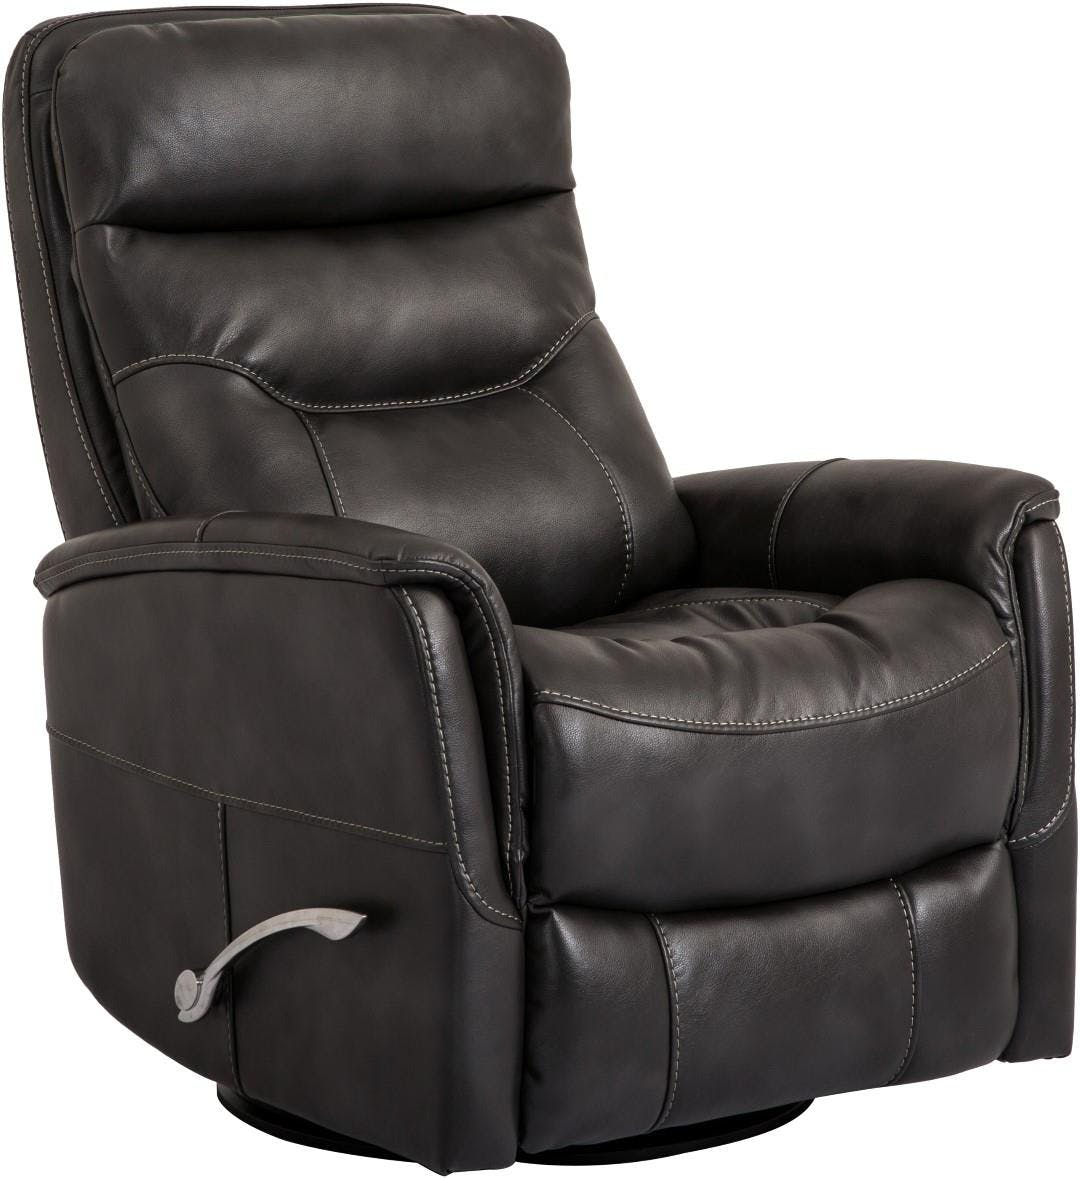 Parker House Swivel Recliner 692646 - Talsma Furniture - Hudsonville